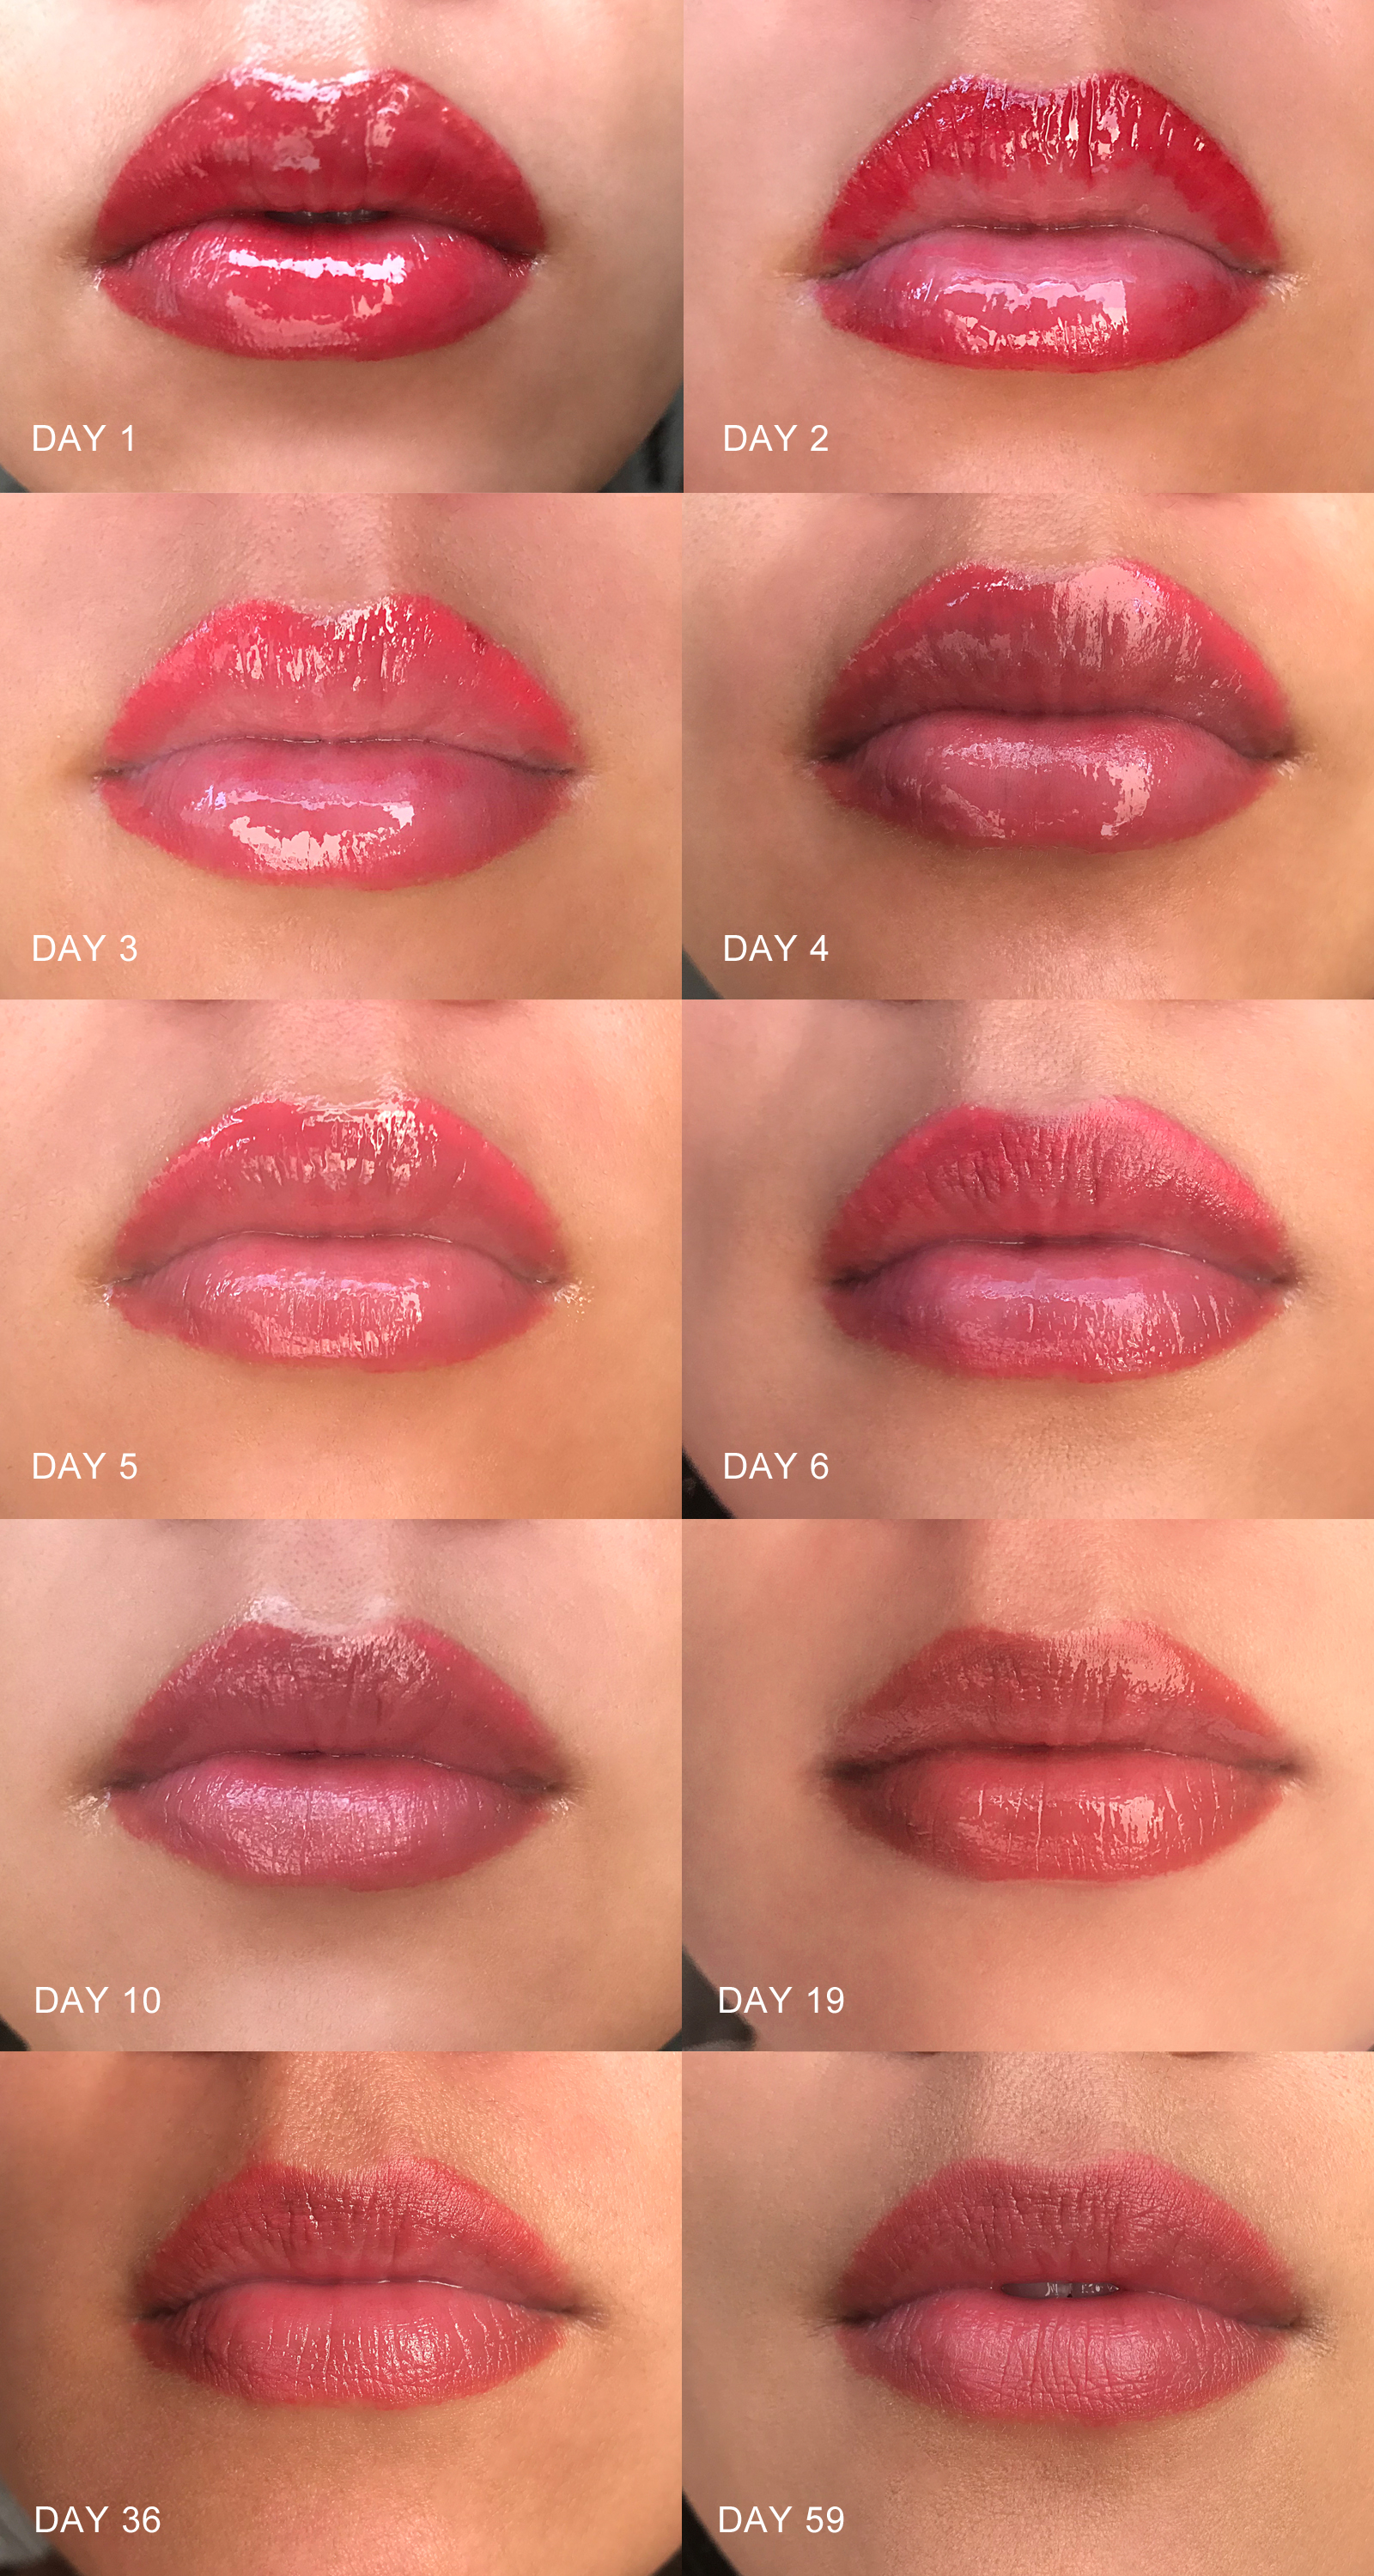 Healing after my touch-up session: This time we used more of a pink color to offset the red-orange undertone of my natural lip color and create more of a pink finish. The healing process was much faster this time around. - www.theballeronabudget.com